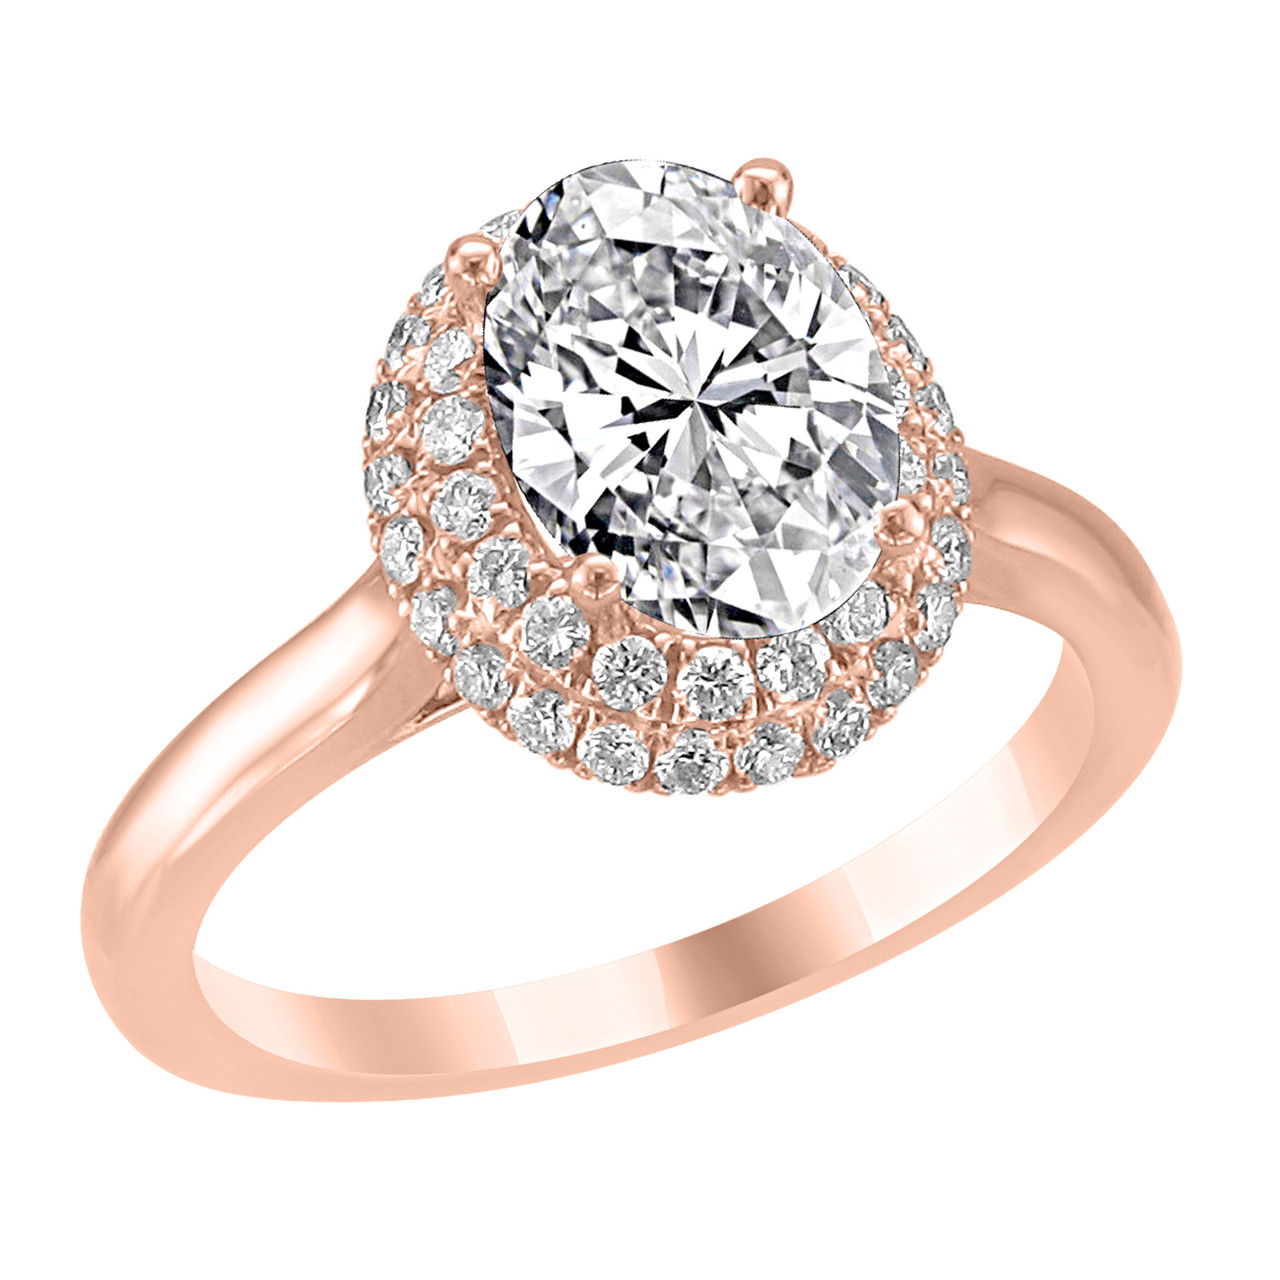 1aab806360cce 14K Rose Gold Oval Double Halo Diamond Engagement Ring - Iris Style